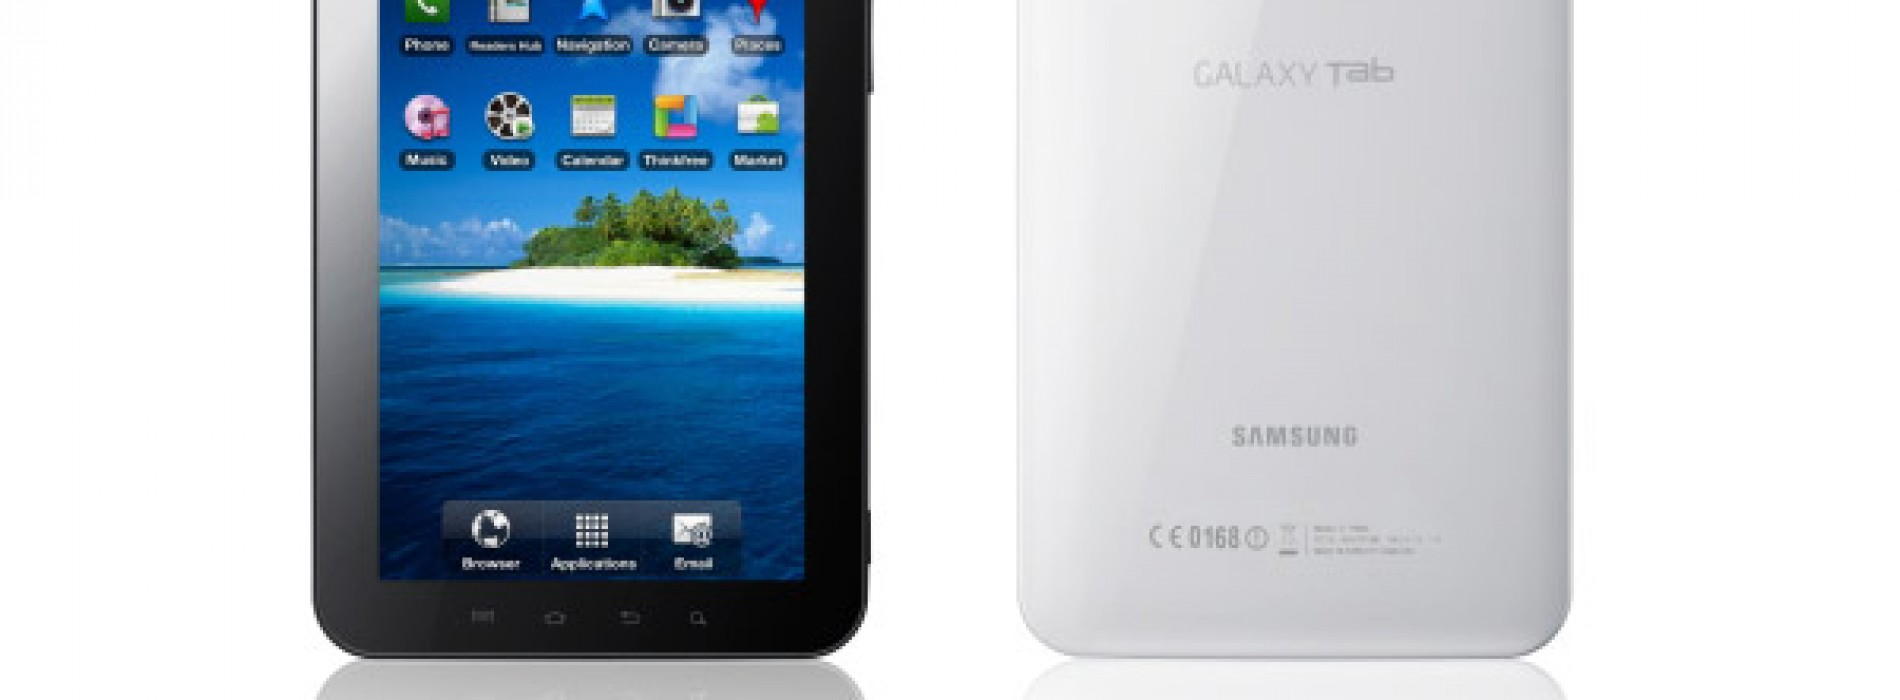 Verizon Samsung Galaxy Tab Gingerbread update coming soon